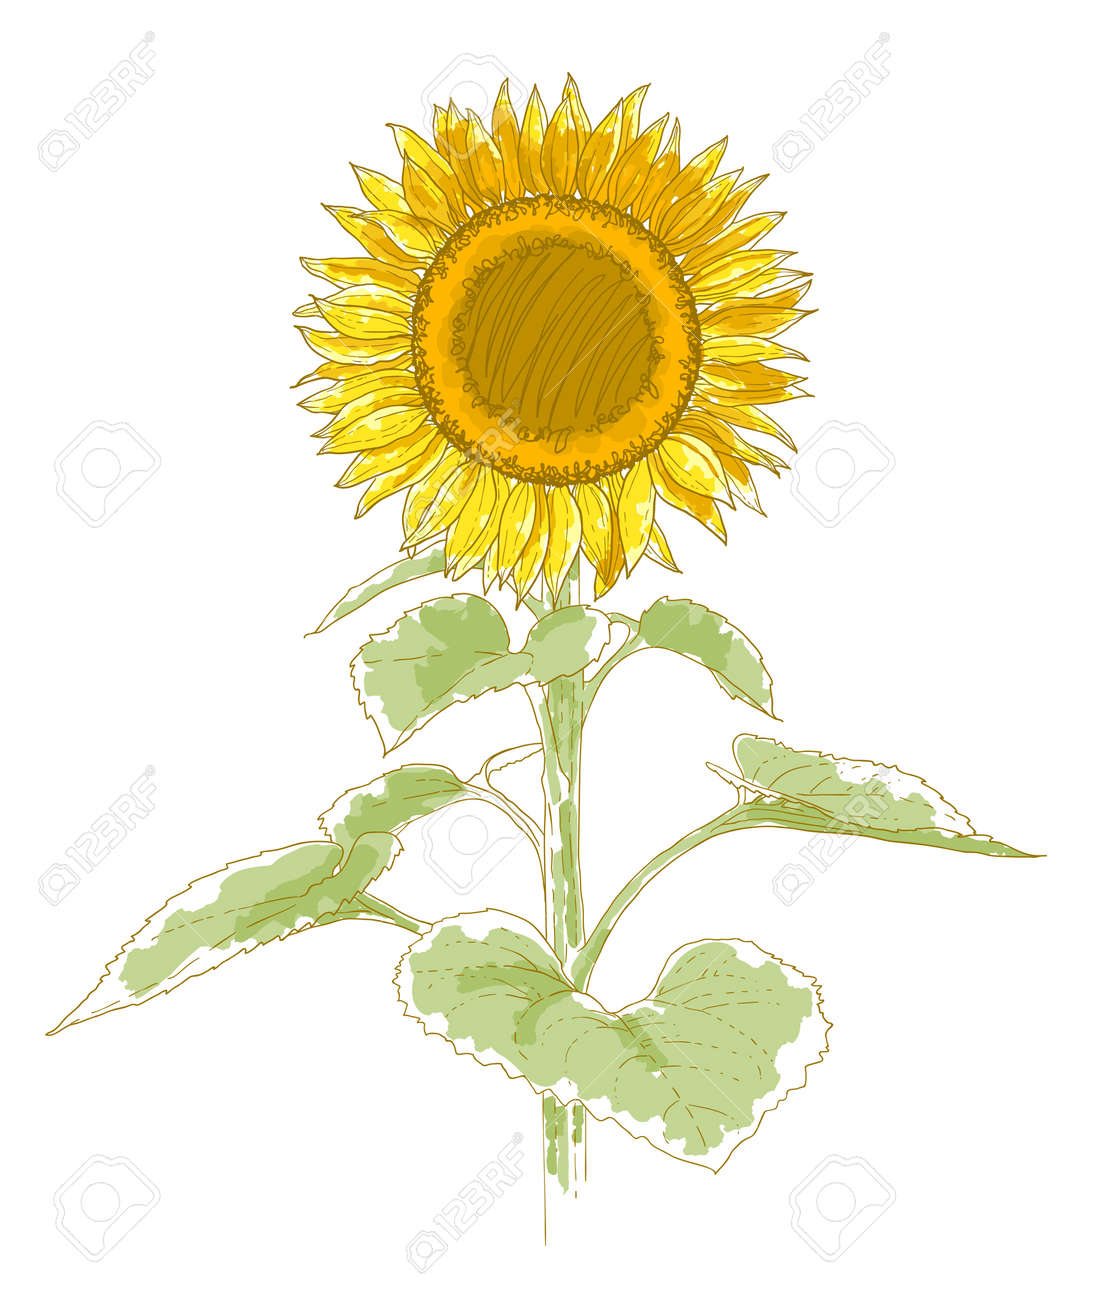 Uncategorized Drawing Sunflower hand drawing sunflower isolated on white background watercolor and pen imitation stock vector 12491332